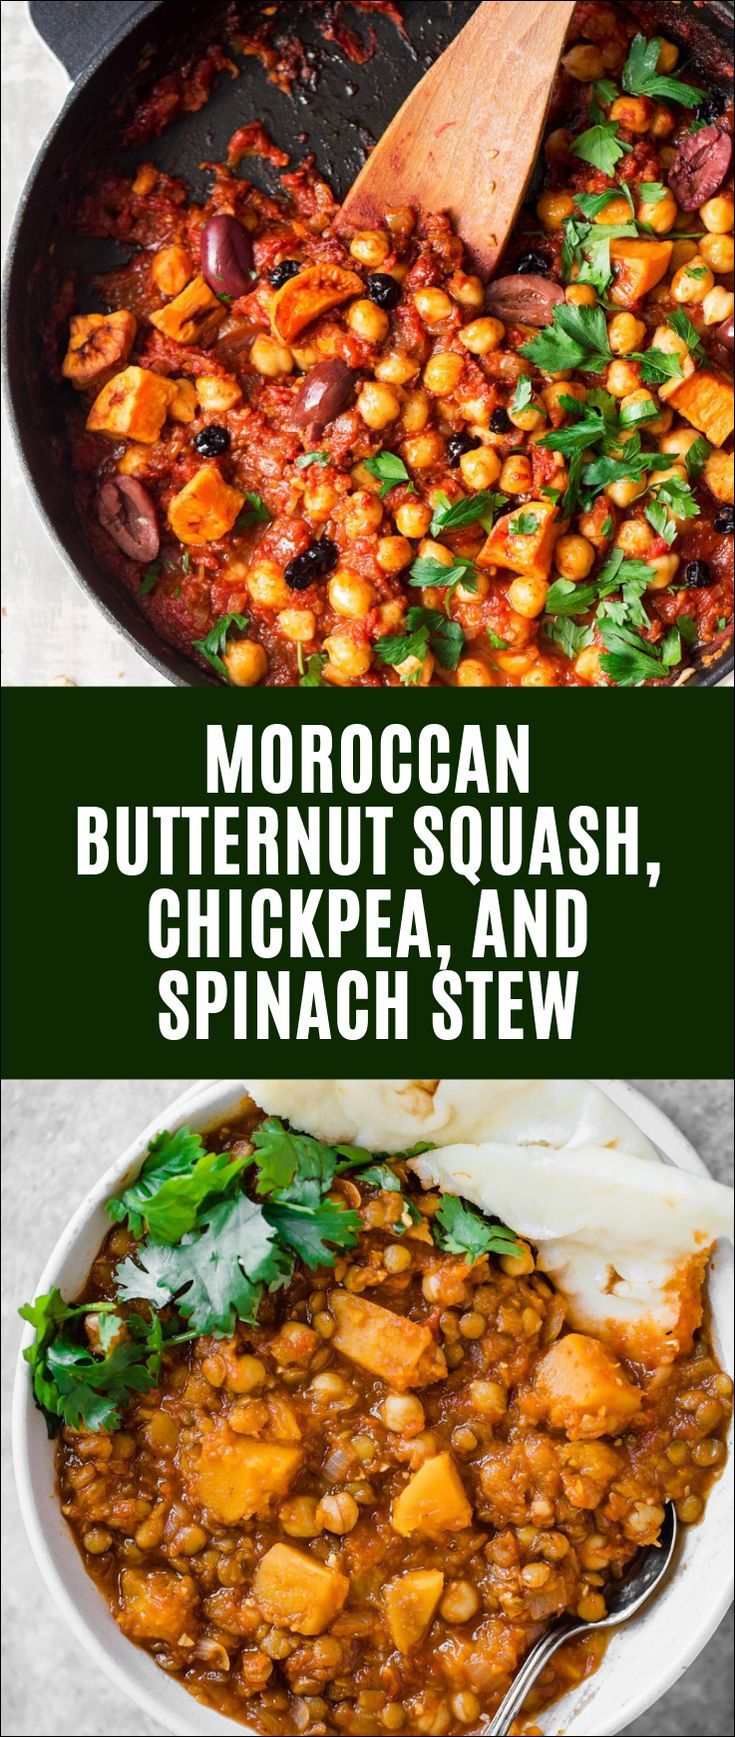 Moroccan Butternut Squash, Chickpea, and Spinach Stew #butternutsquashsoup